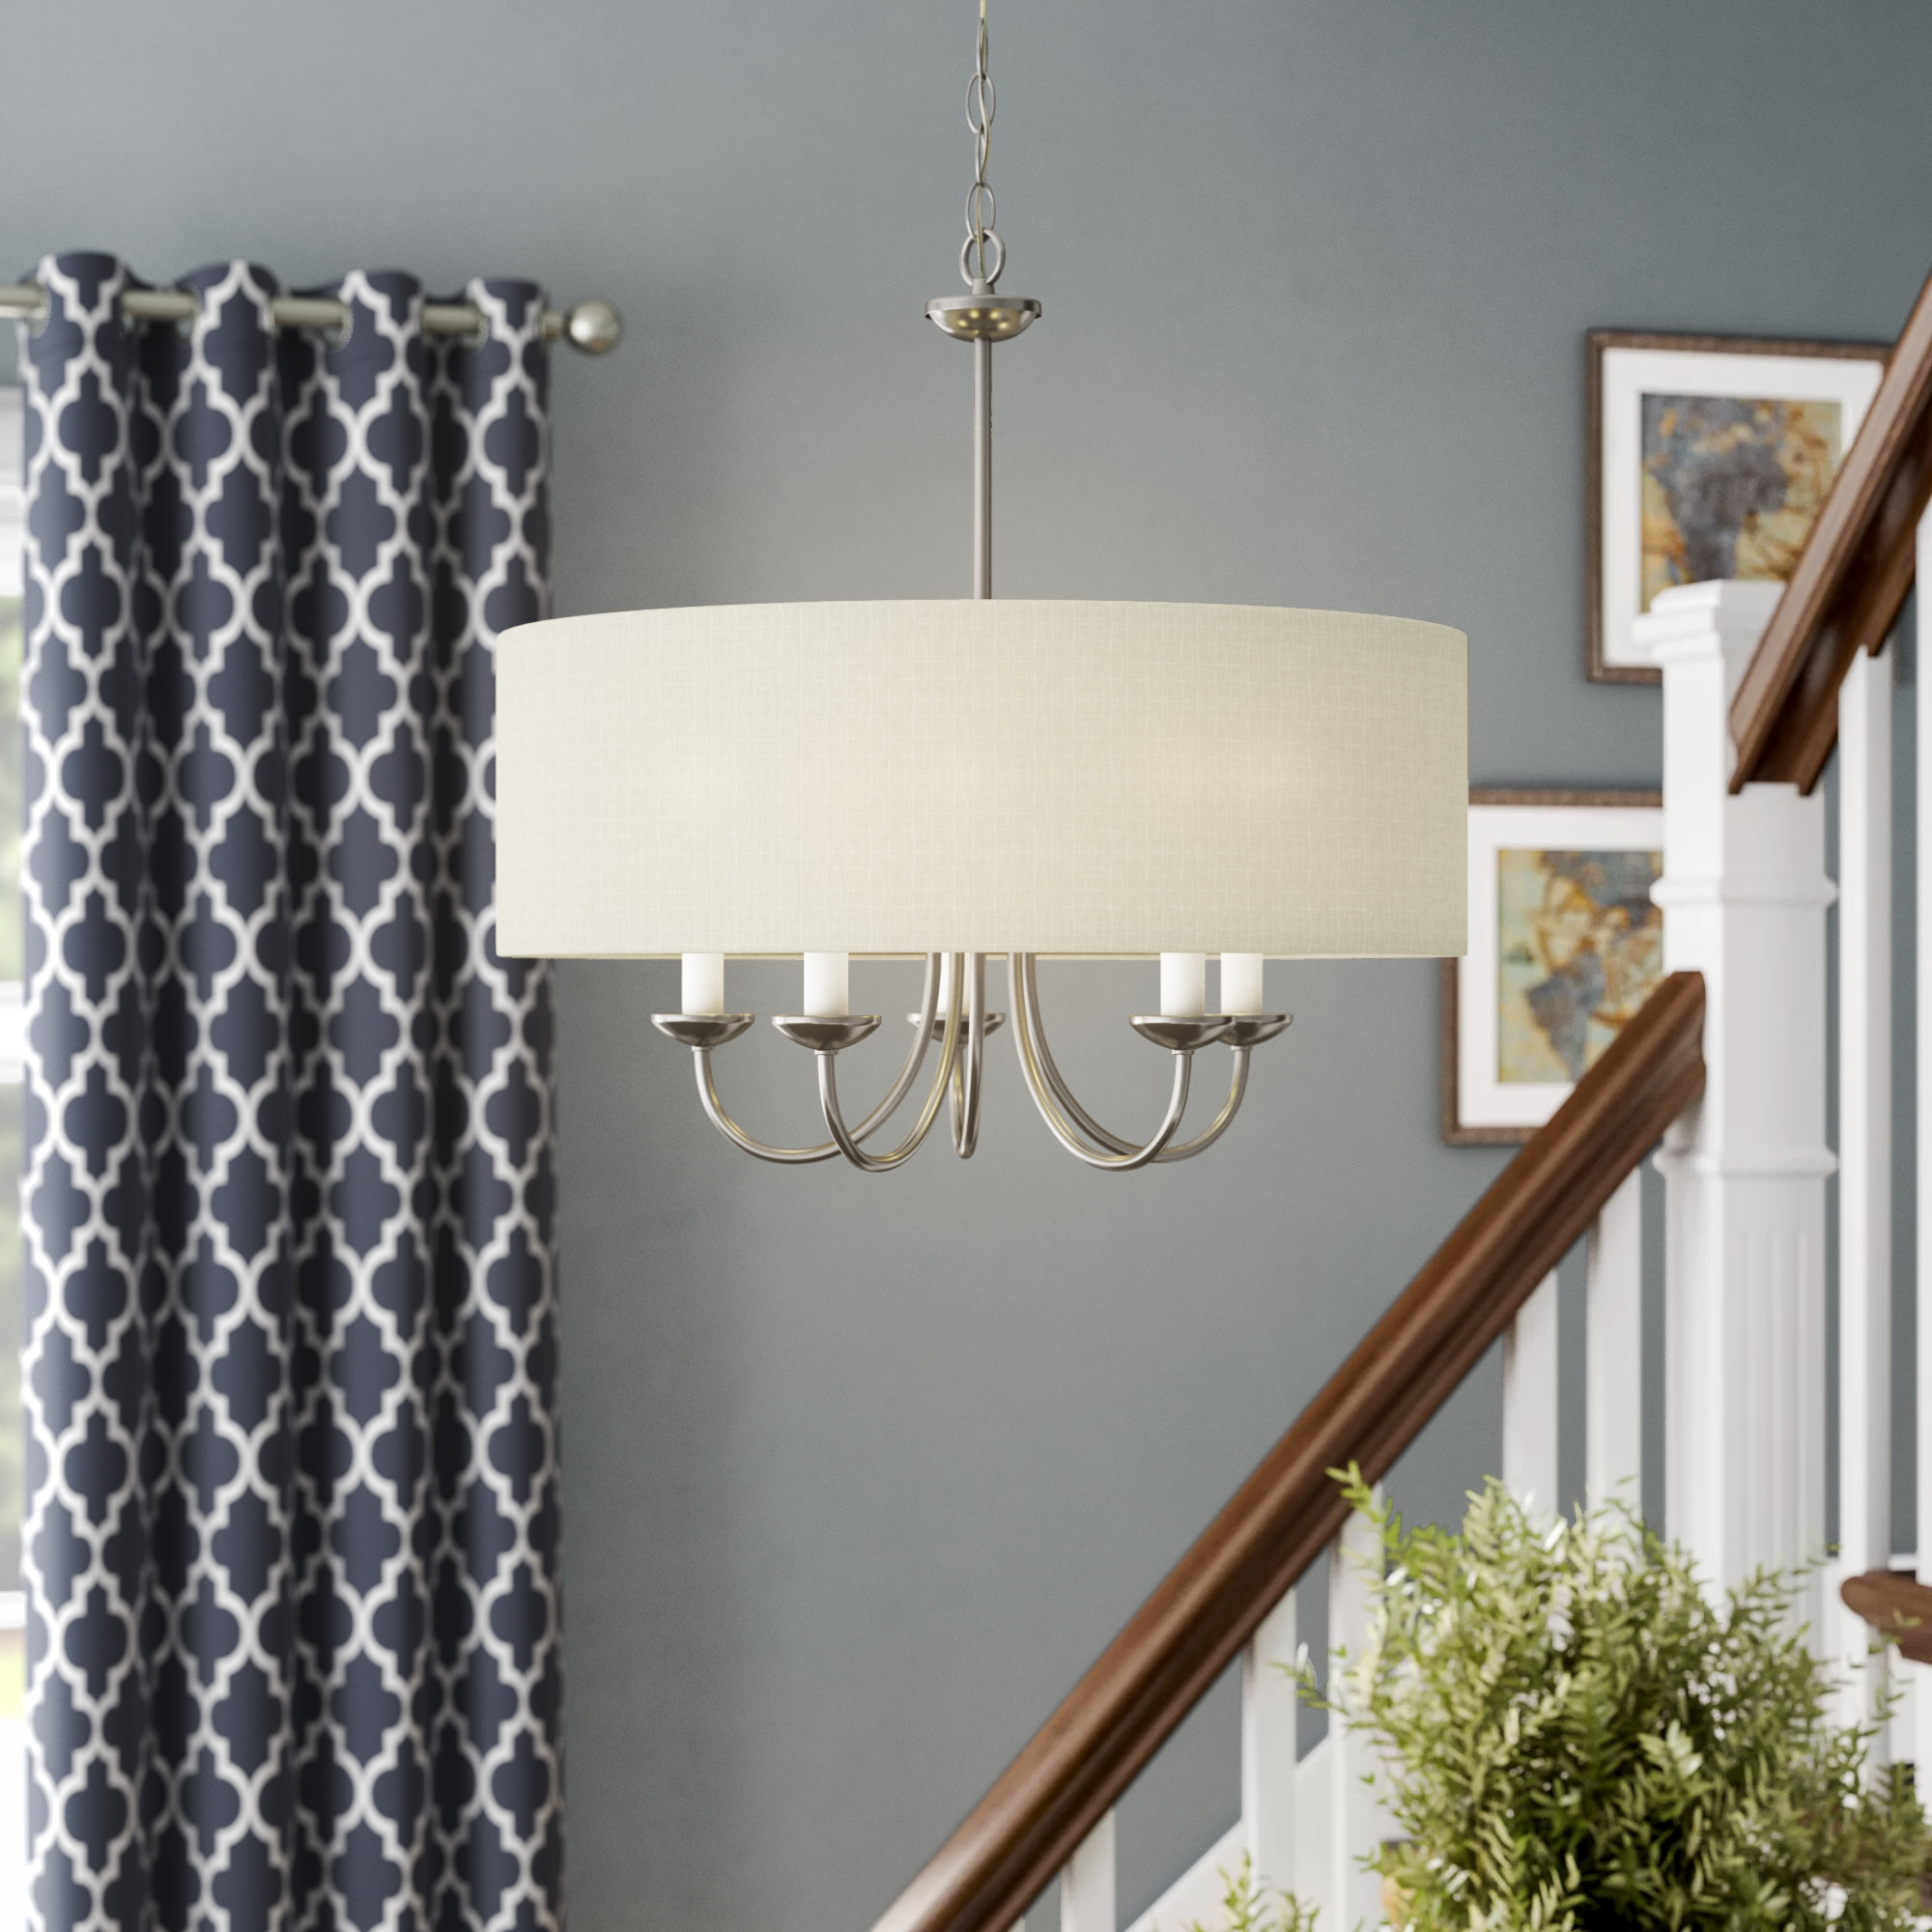 Widely Used Andover Mills Burton 5 Light Drum Chandelier For Burton 5 Light Drum Chandeliers (View 4 of 20)